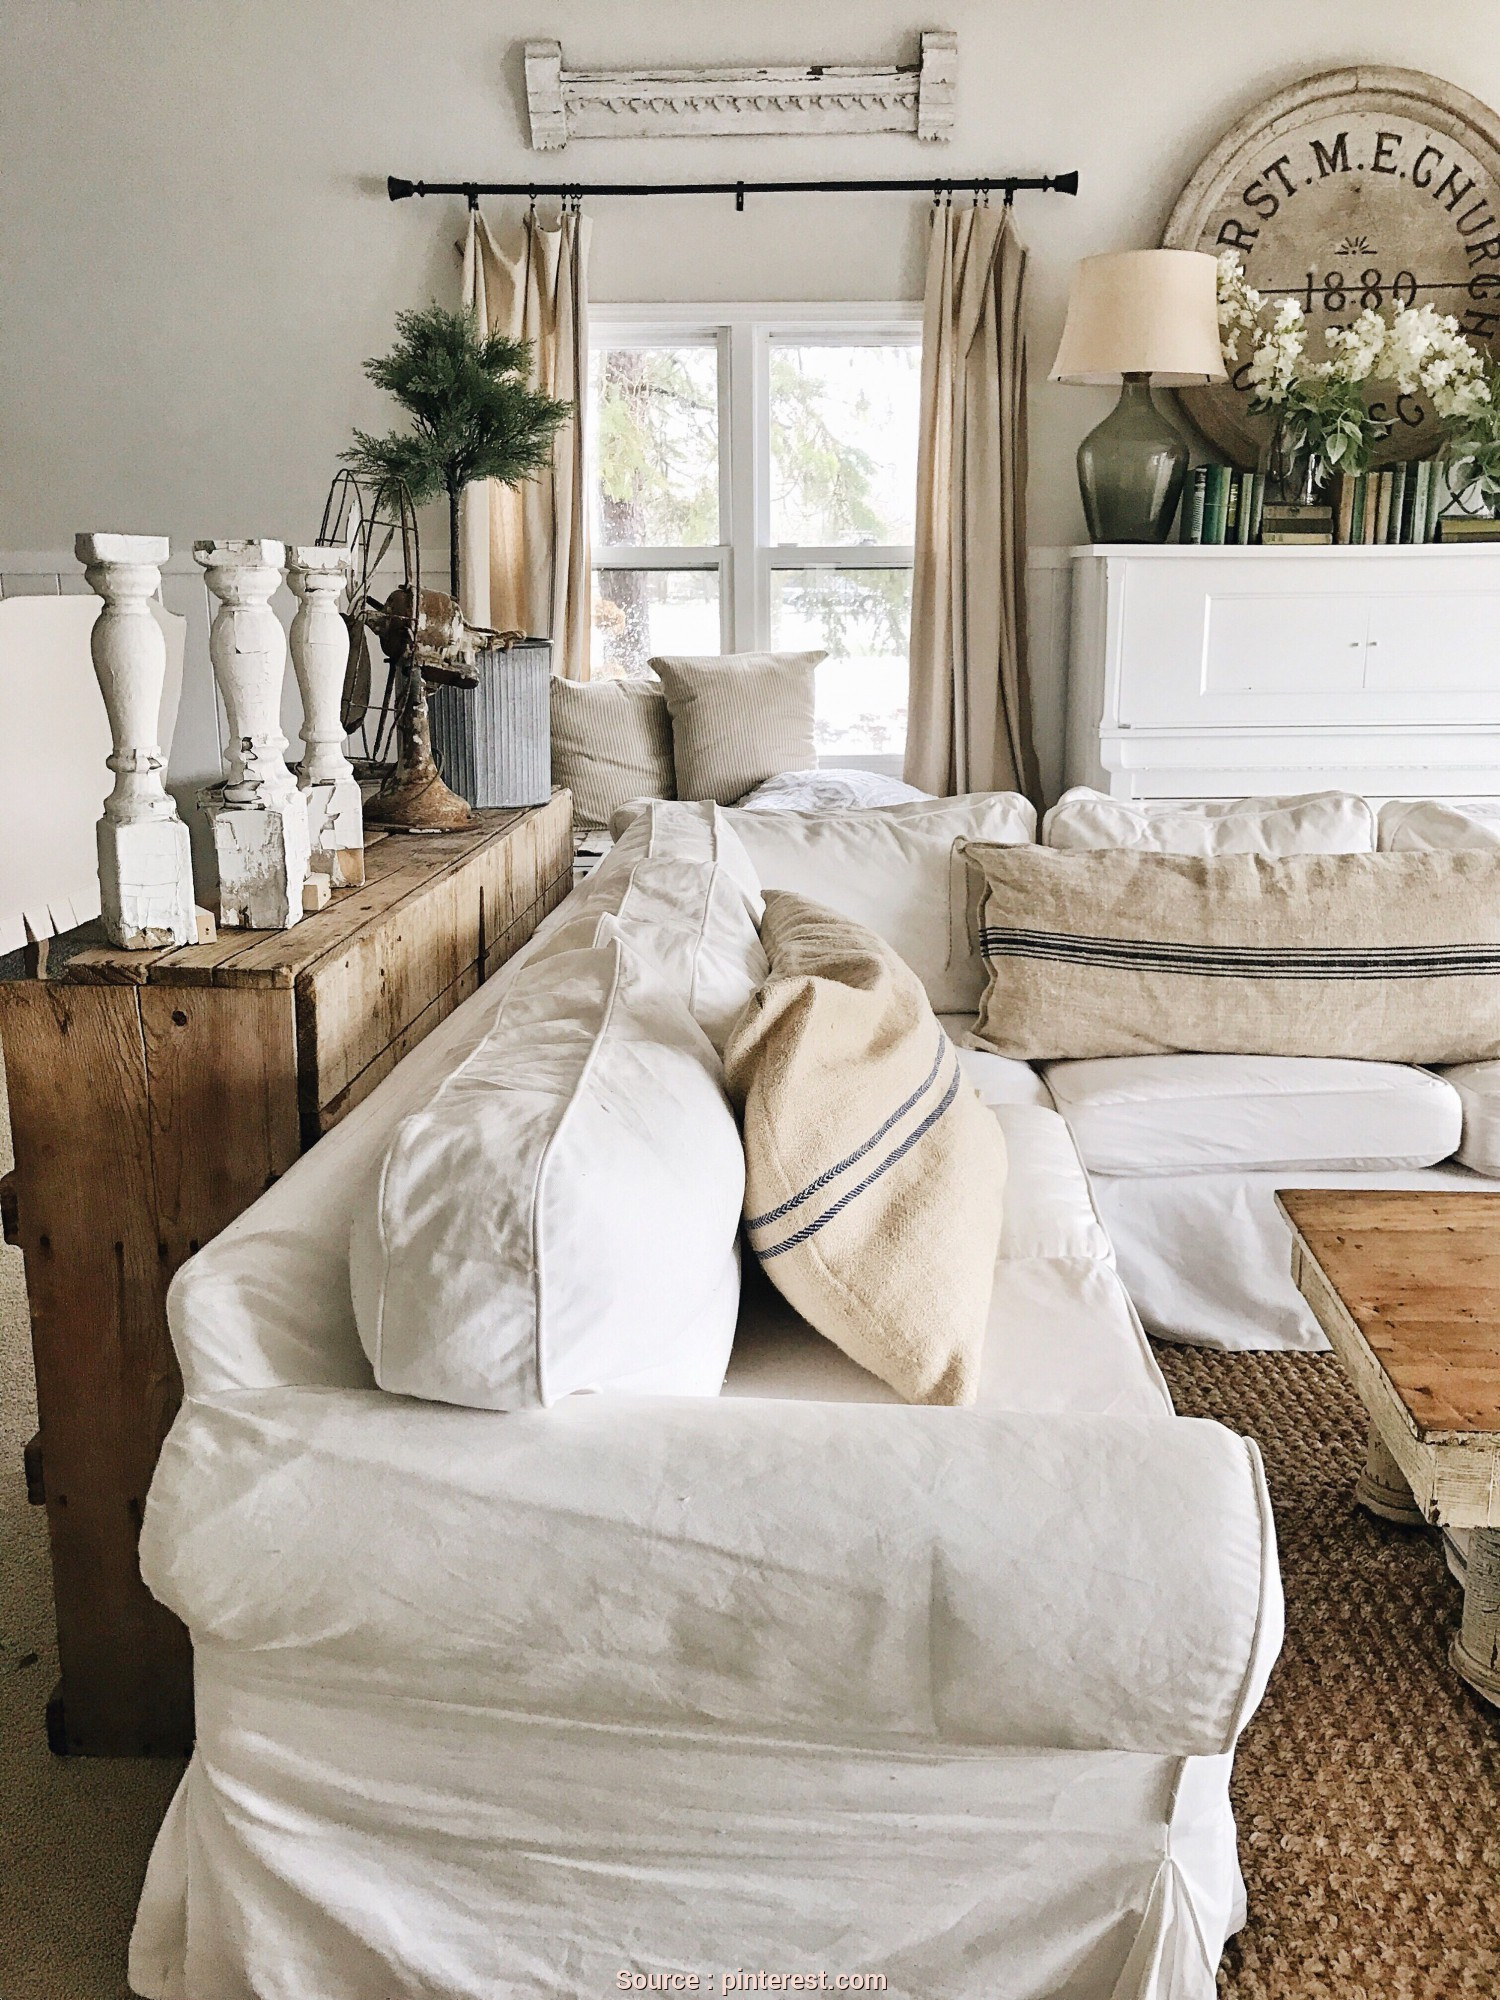 Divano Country Ikea, Locale Farmhouse Decor From Ikea, Blogger Home Projects We Love